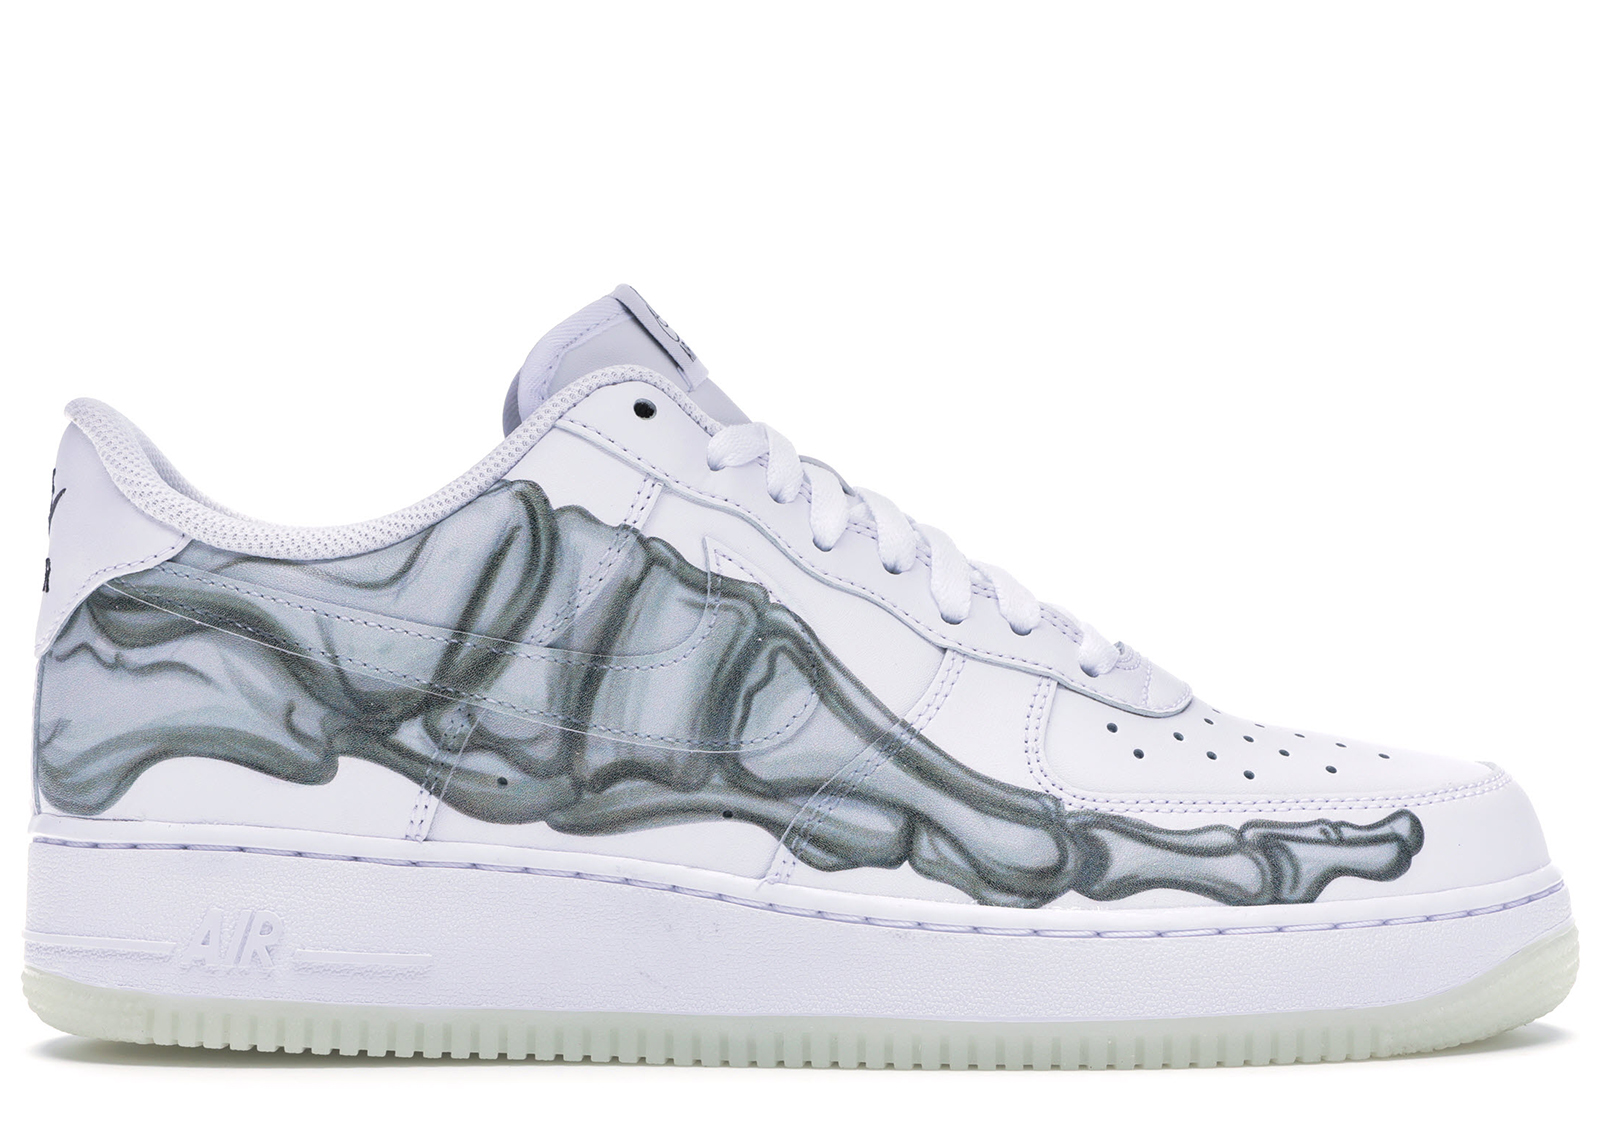 Nike Air Force 1 Low Skeleton Le Site de la Sneaker